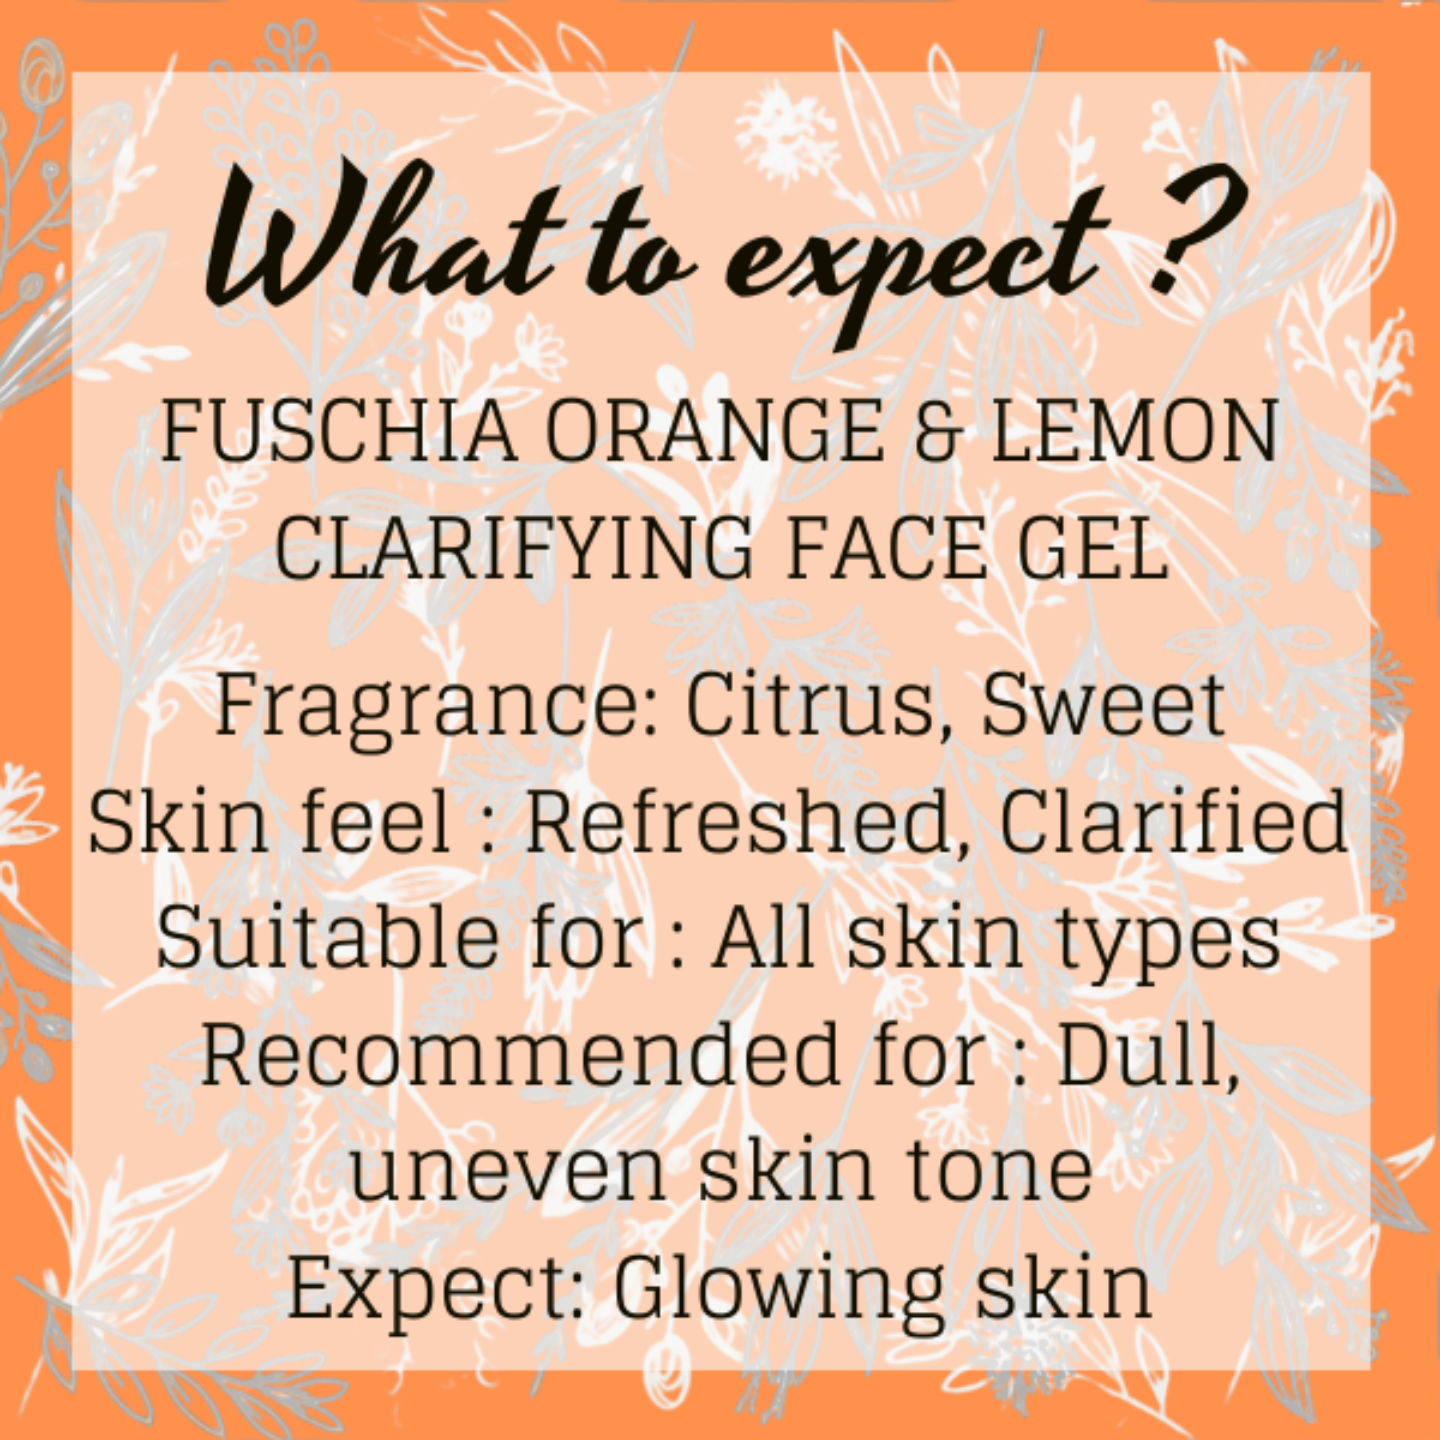 Fuschia Clarifying Face Gel - Orange & Lemon - 50g